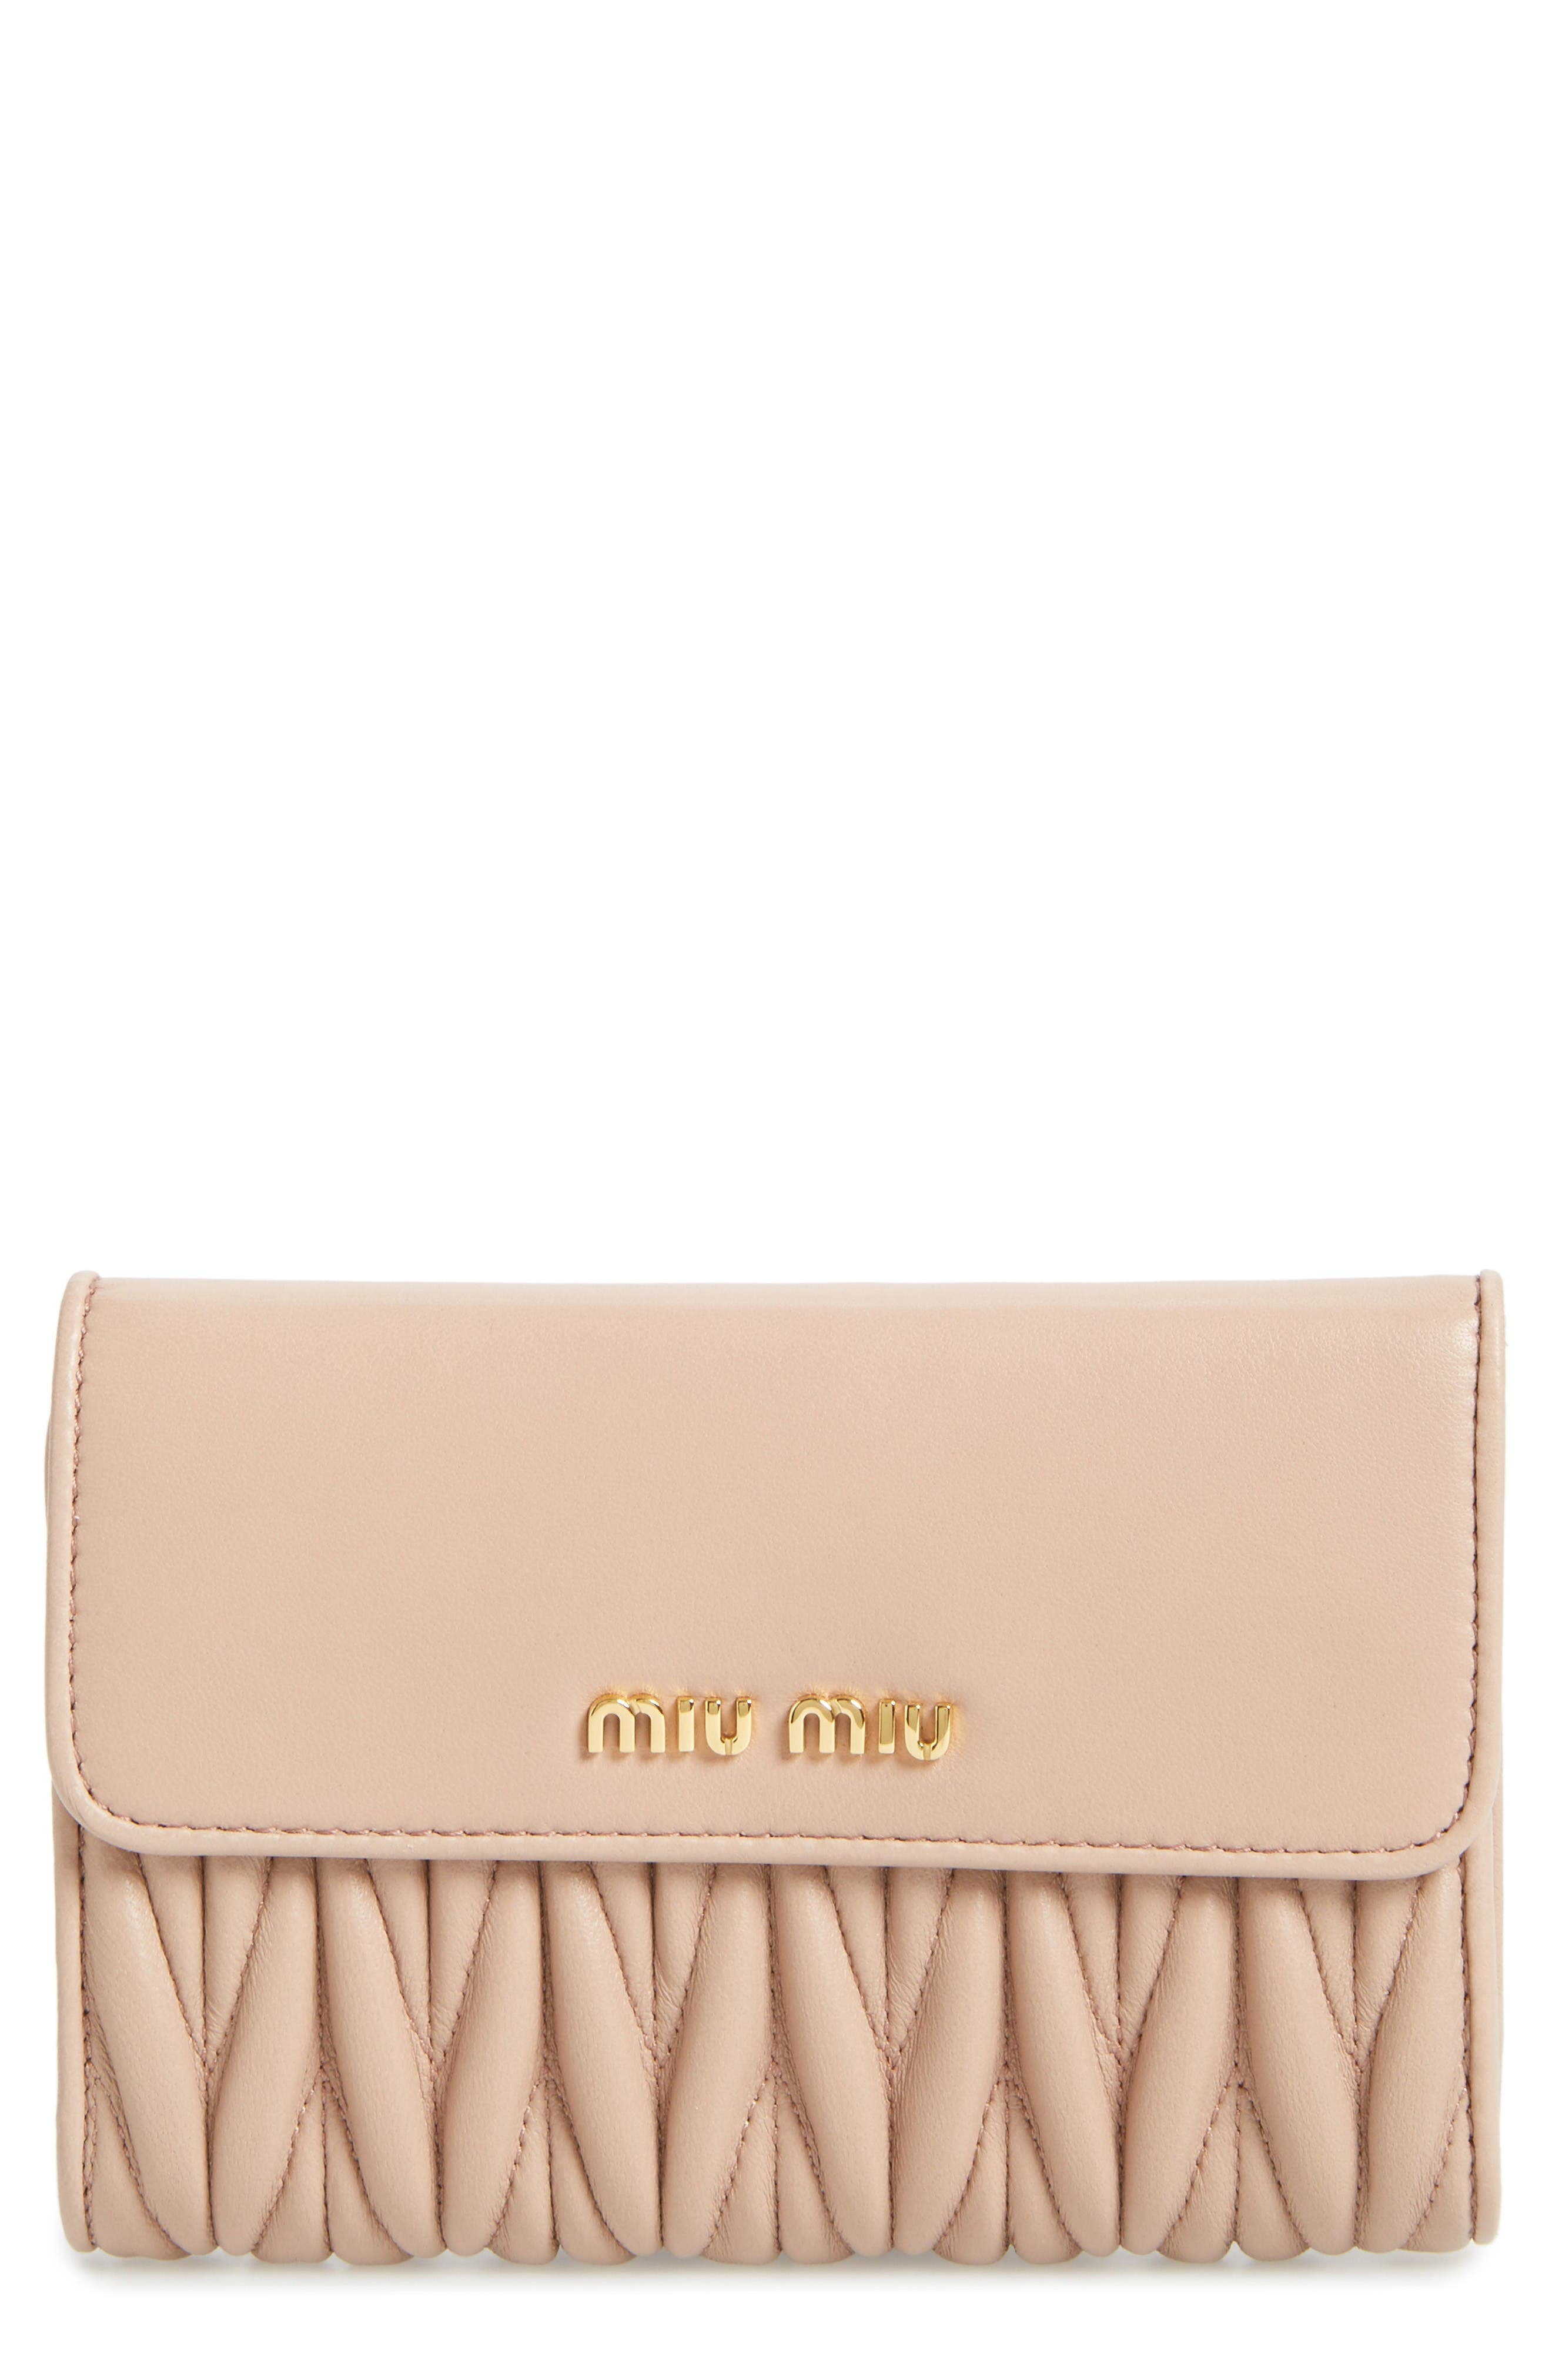 Miu Miu Matelassé Leather French Wallet